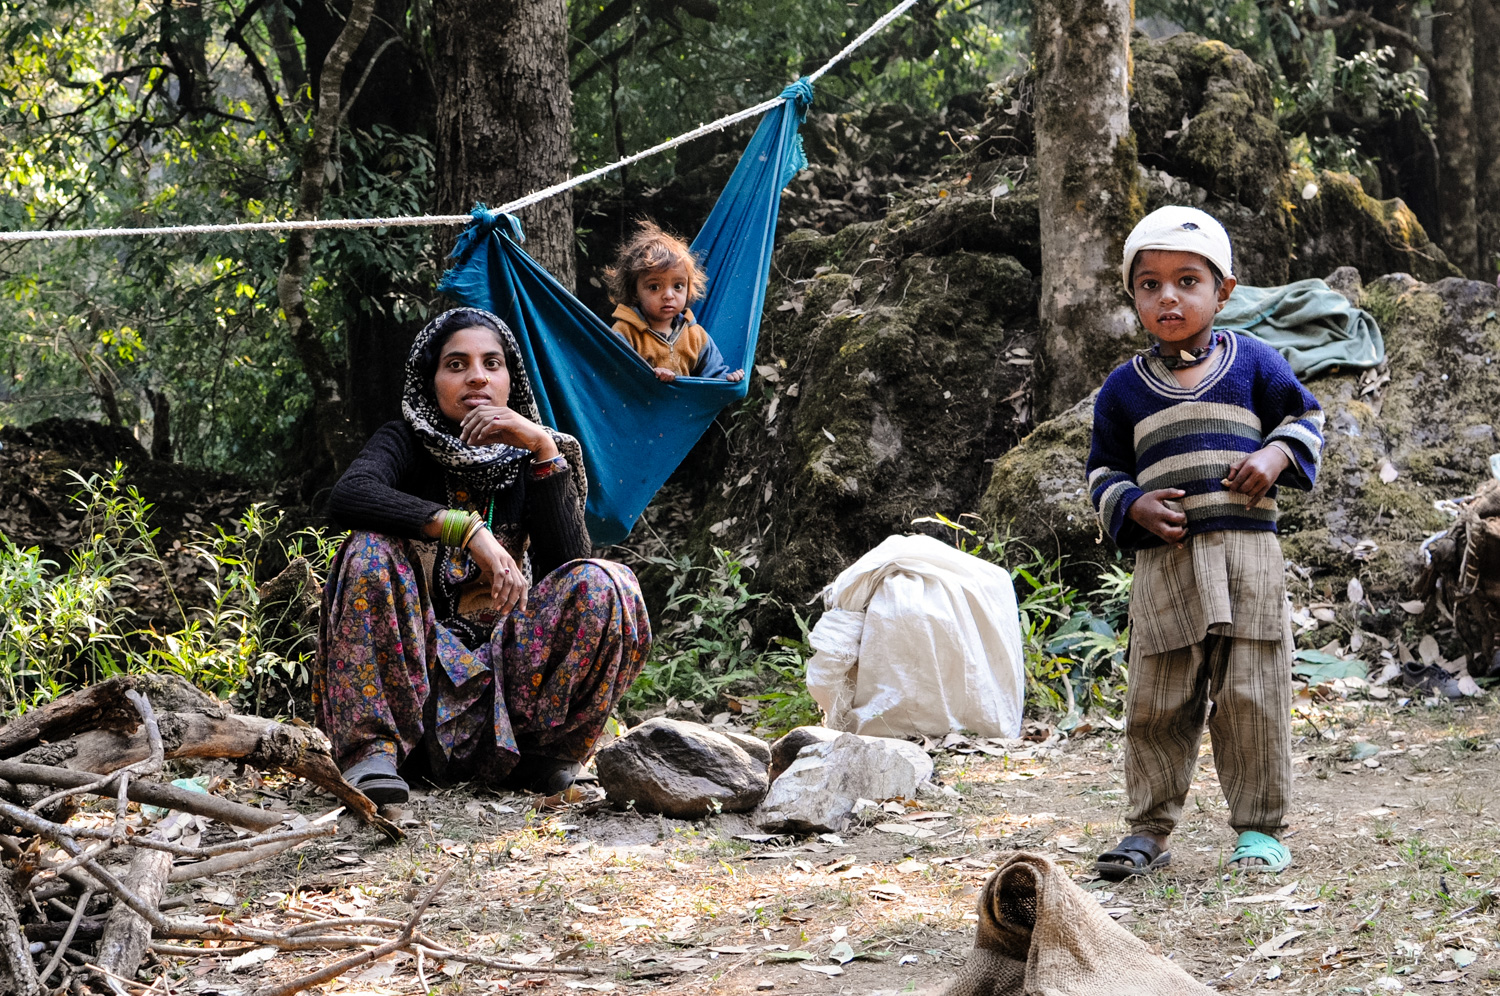 Akloo, with Karim and Hasina, in a relaxed camp in the Dunda Mandal Hills